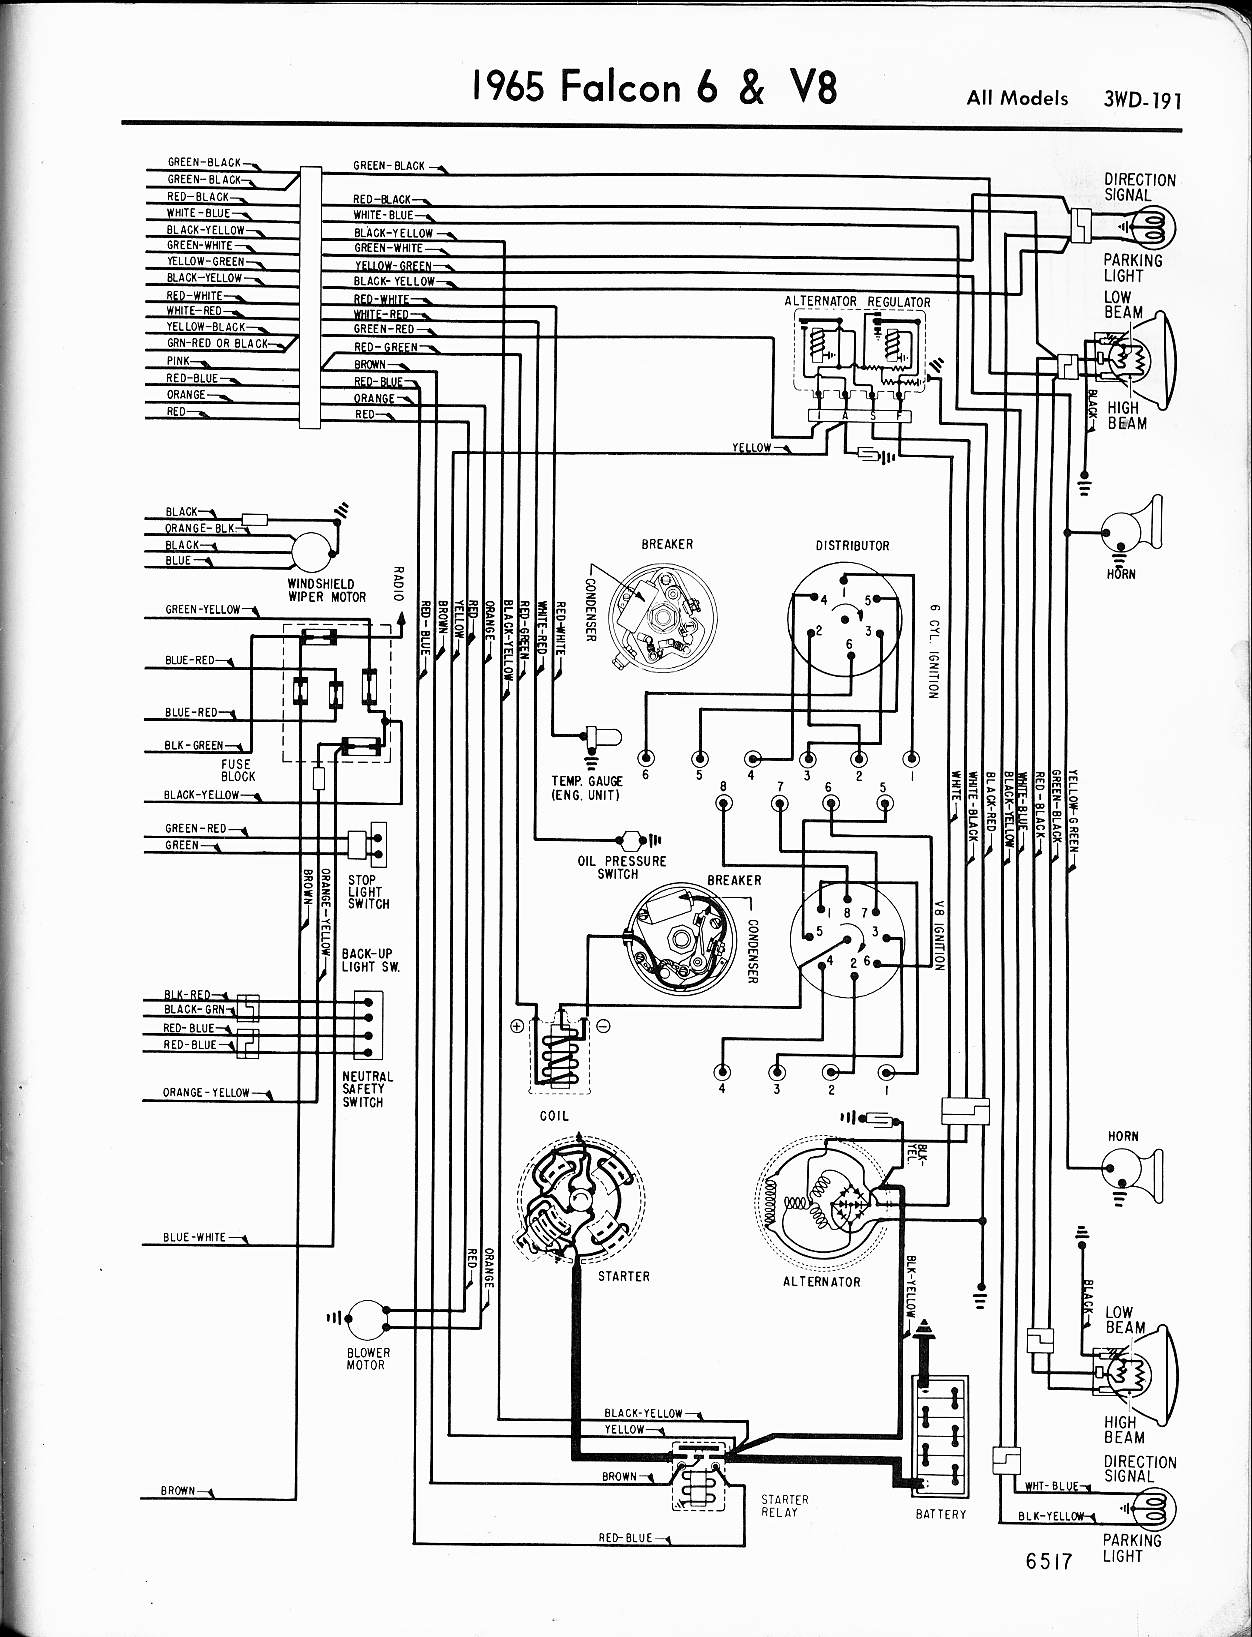 ktm 950 adventure typical ecu and ignition system wiring diagram